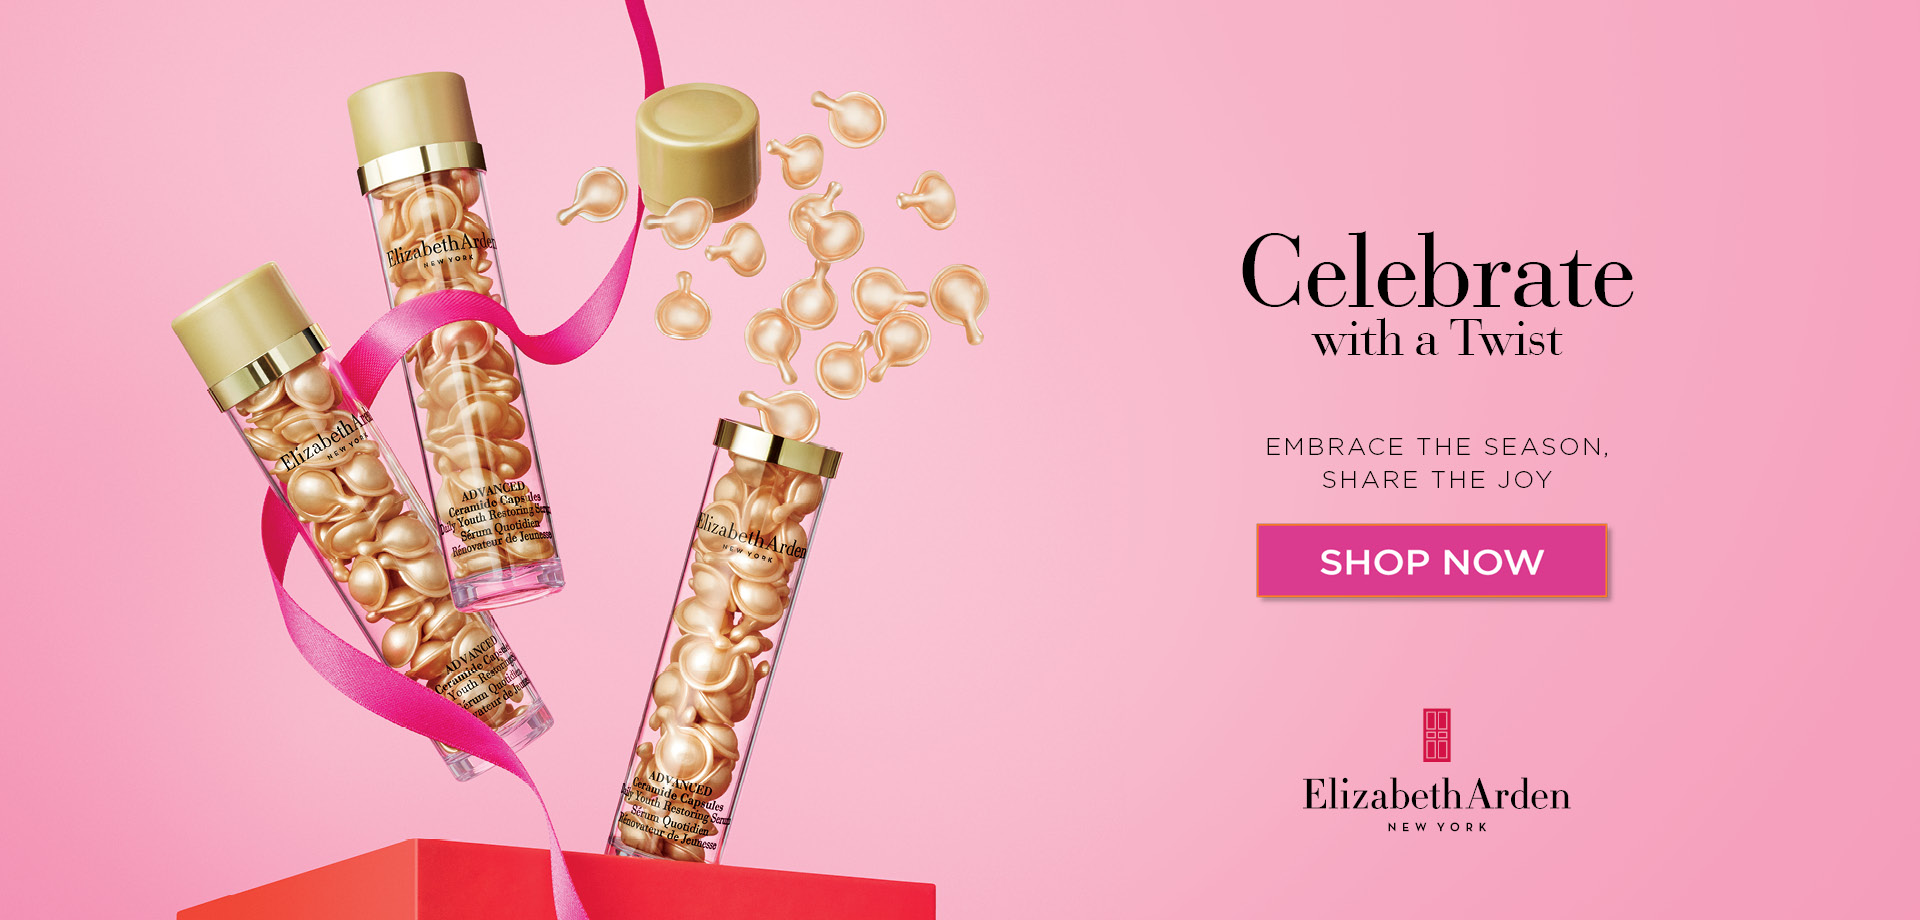 Celebrate Christmas with a Twist with Elizabeth Arden